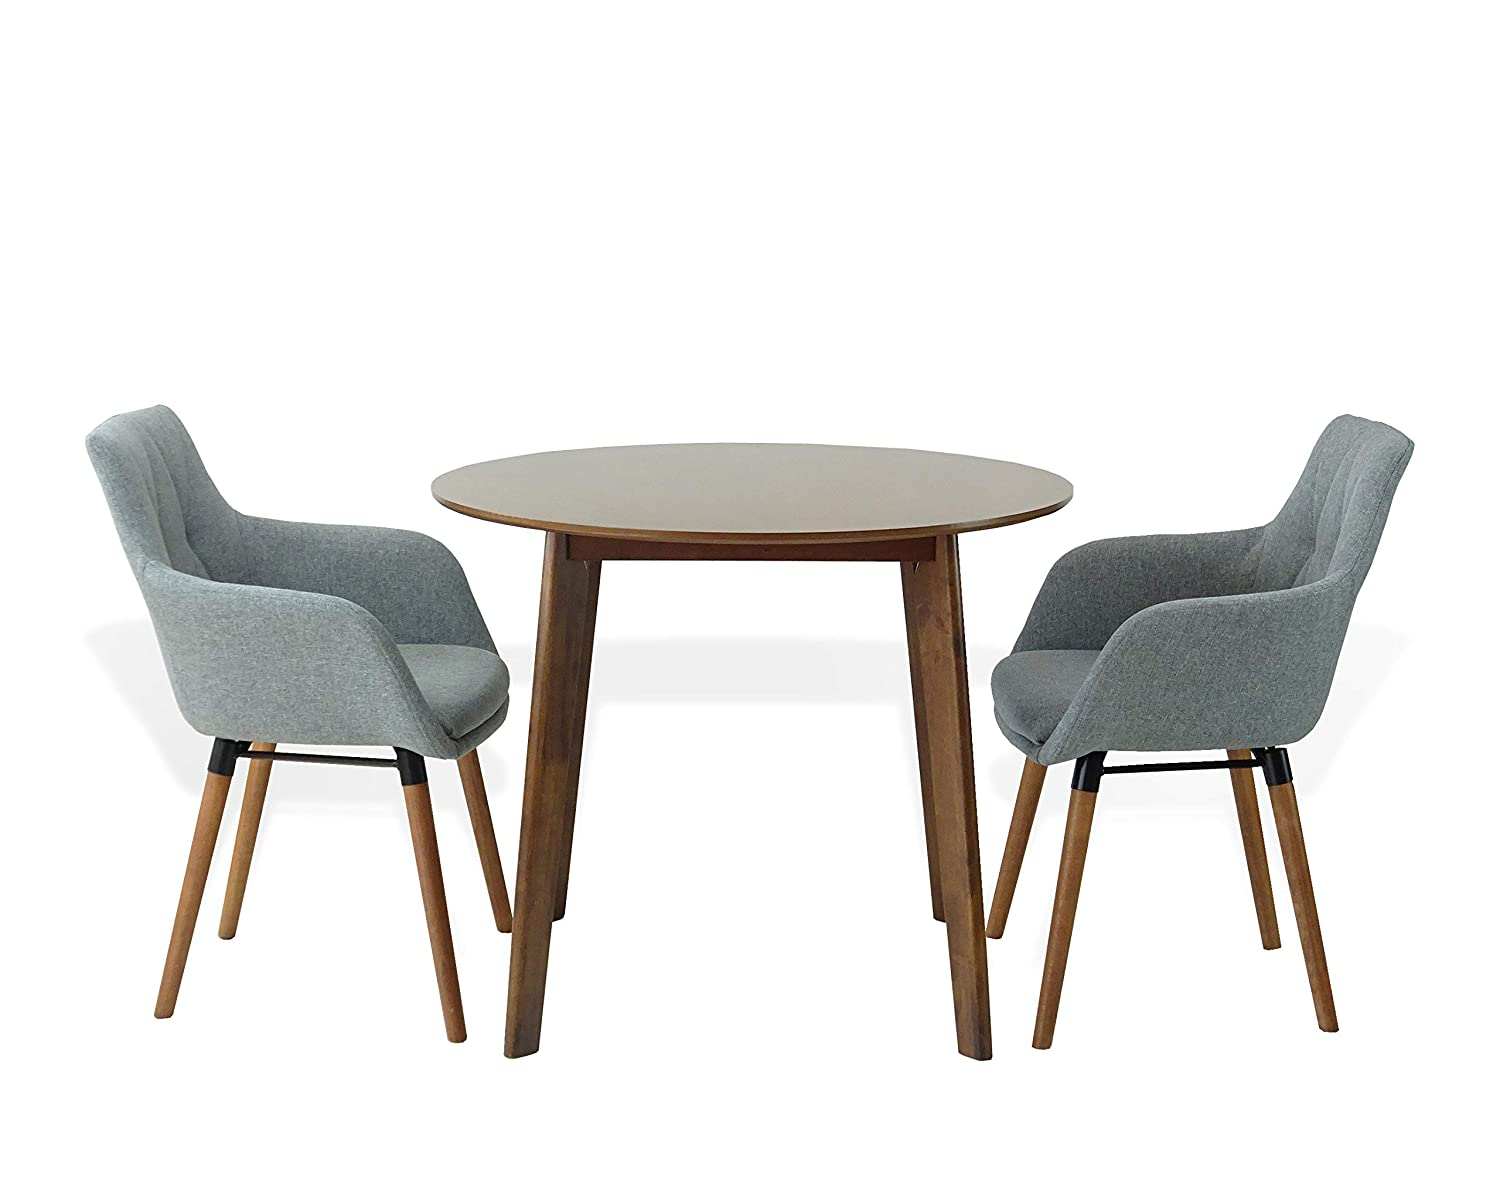 Amazon com sk new interiors dining kitchen set of 3 round wooden medium brown table with 2 alba armchairs gray color table chair sets